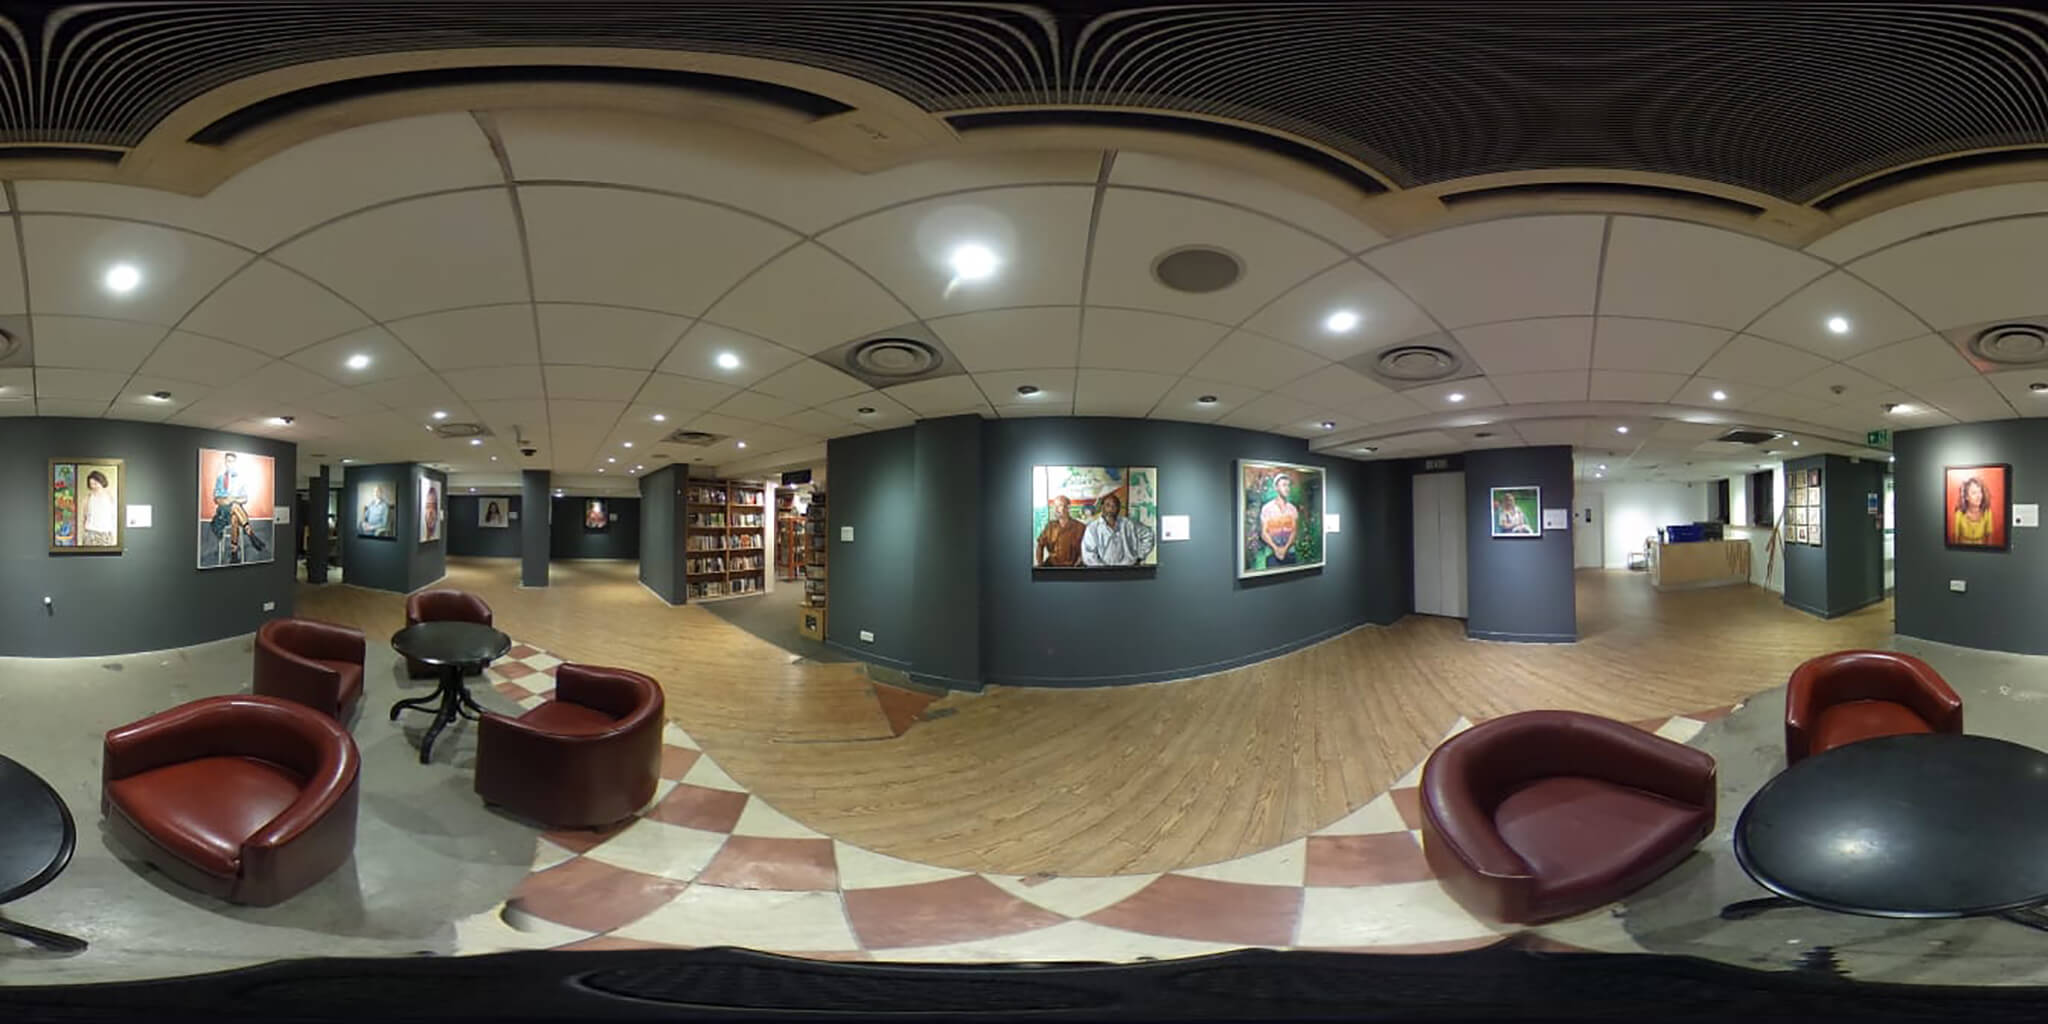 Connected The Changing face of Britain by the Lots Road Group 360 degree image of exhibition with Stella Tooth's portrait centre.